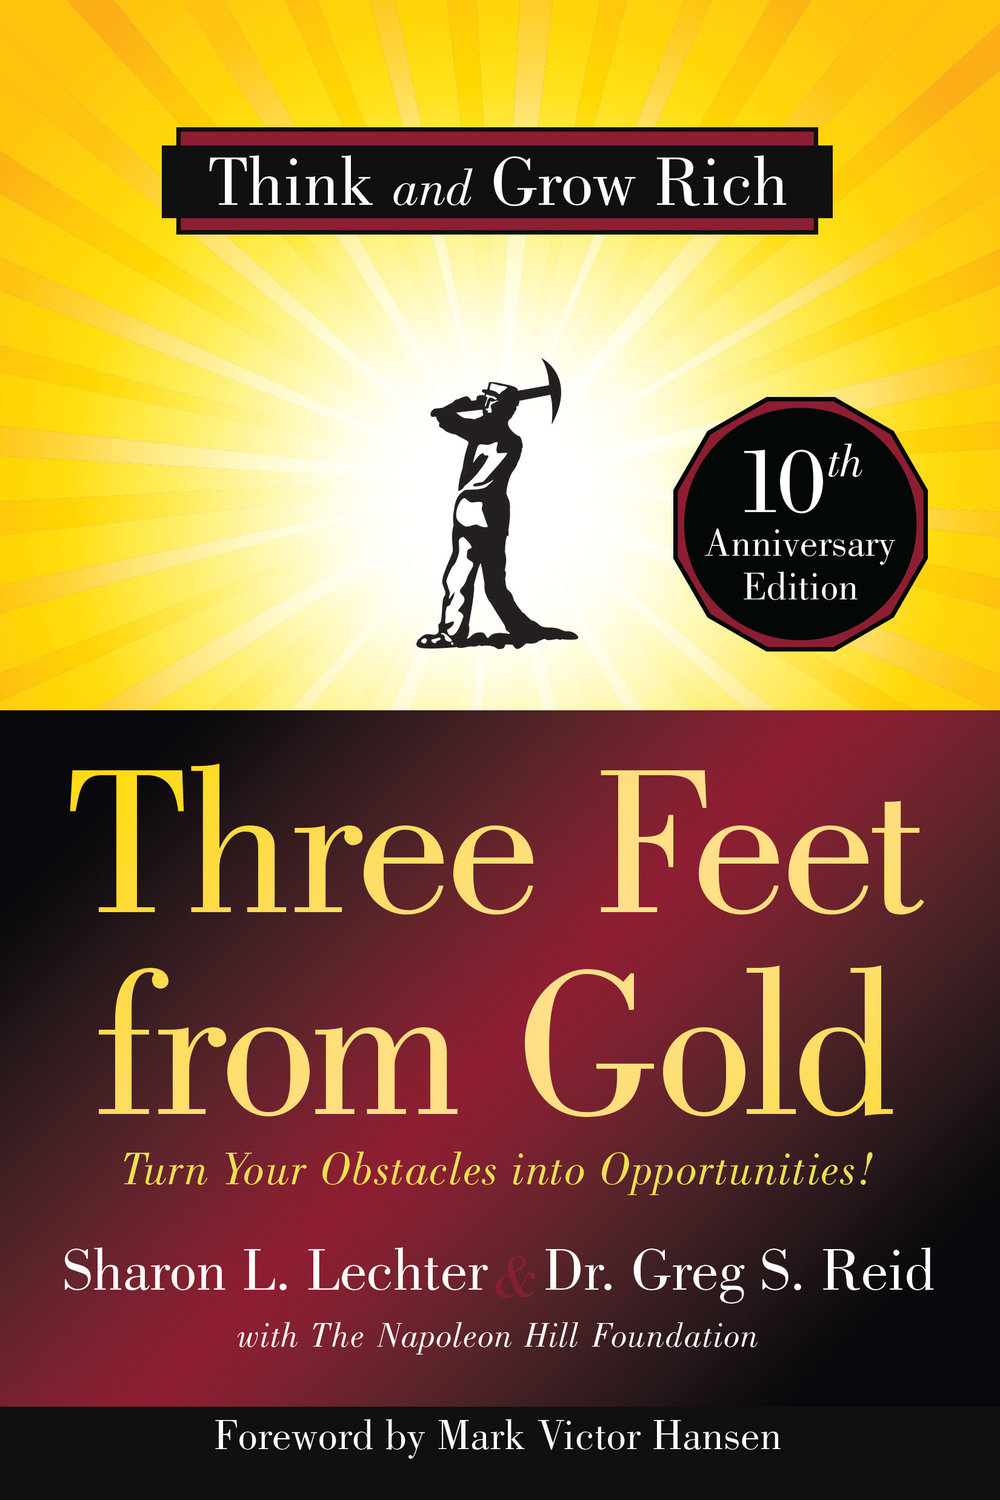 Three Feet from Gold - Sharon L. Lechter and Dr. Greg S. Reid